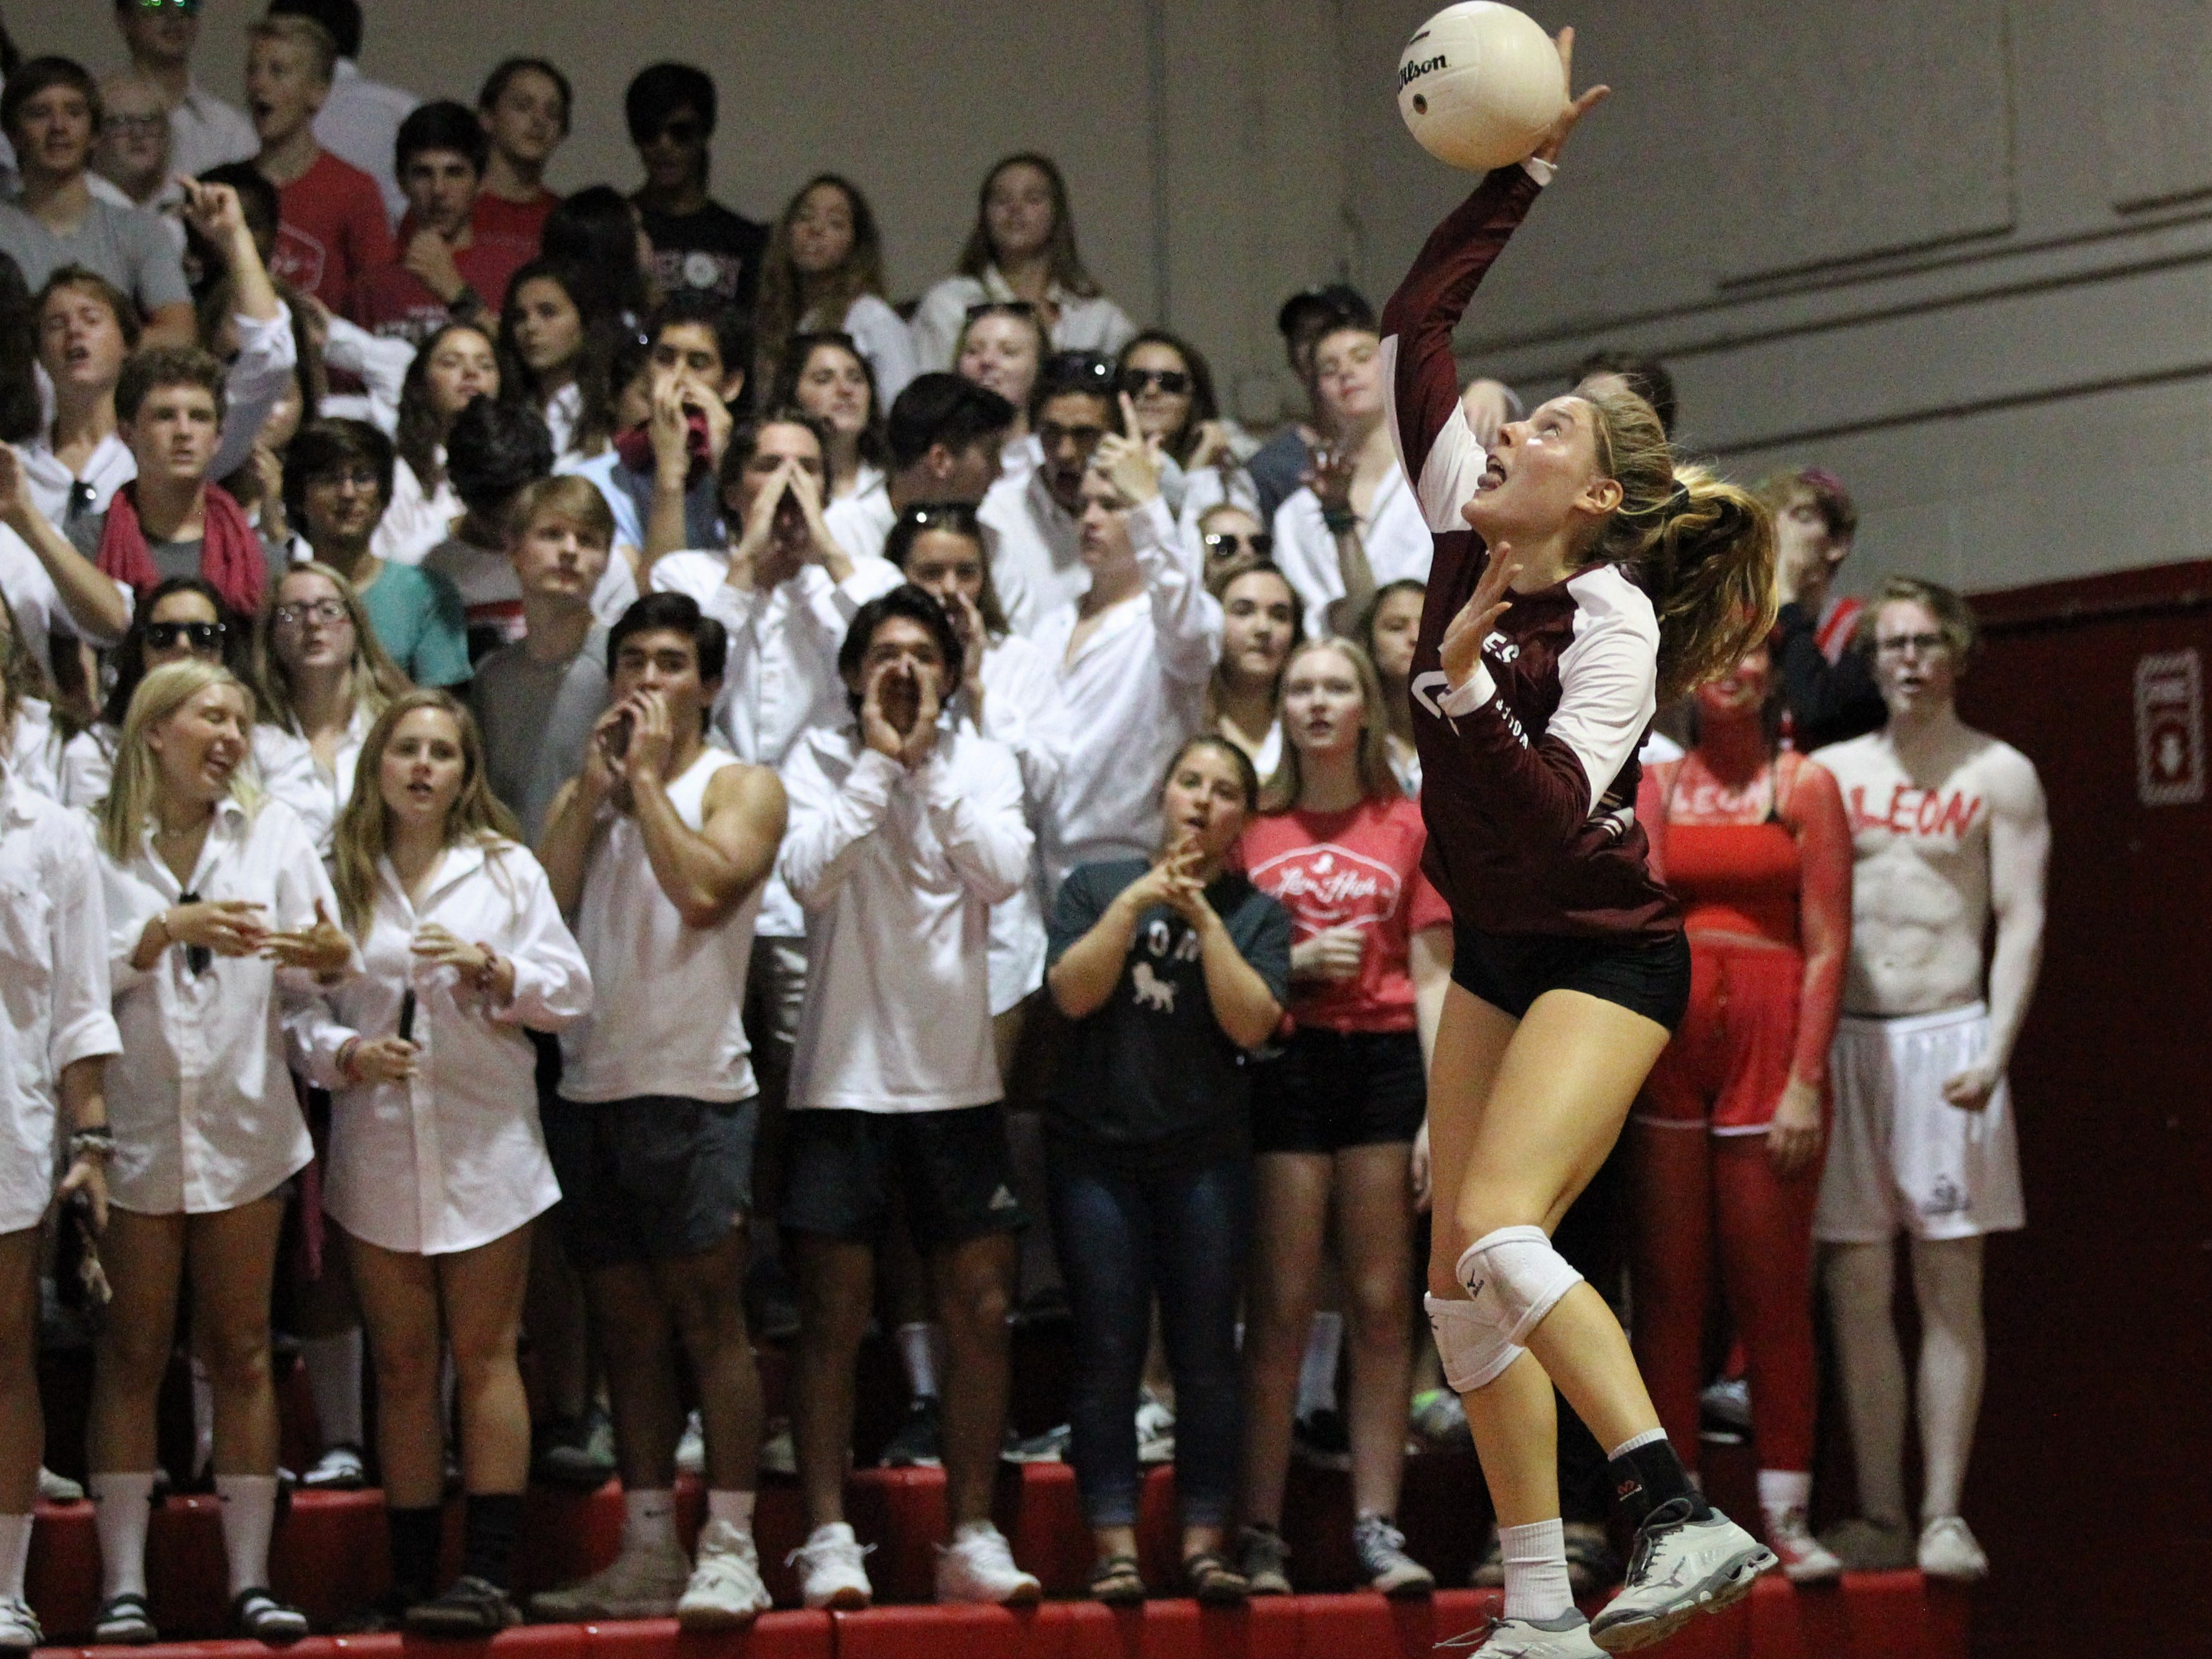 Chiles senior Kelsey Mead serves in front of the Leon student body during a District 2-8A championship game.